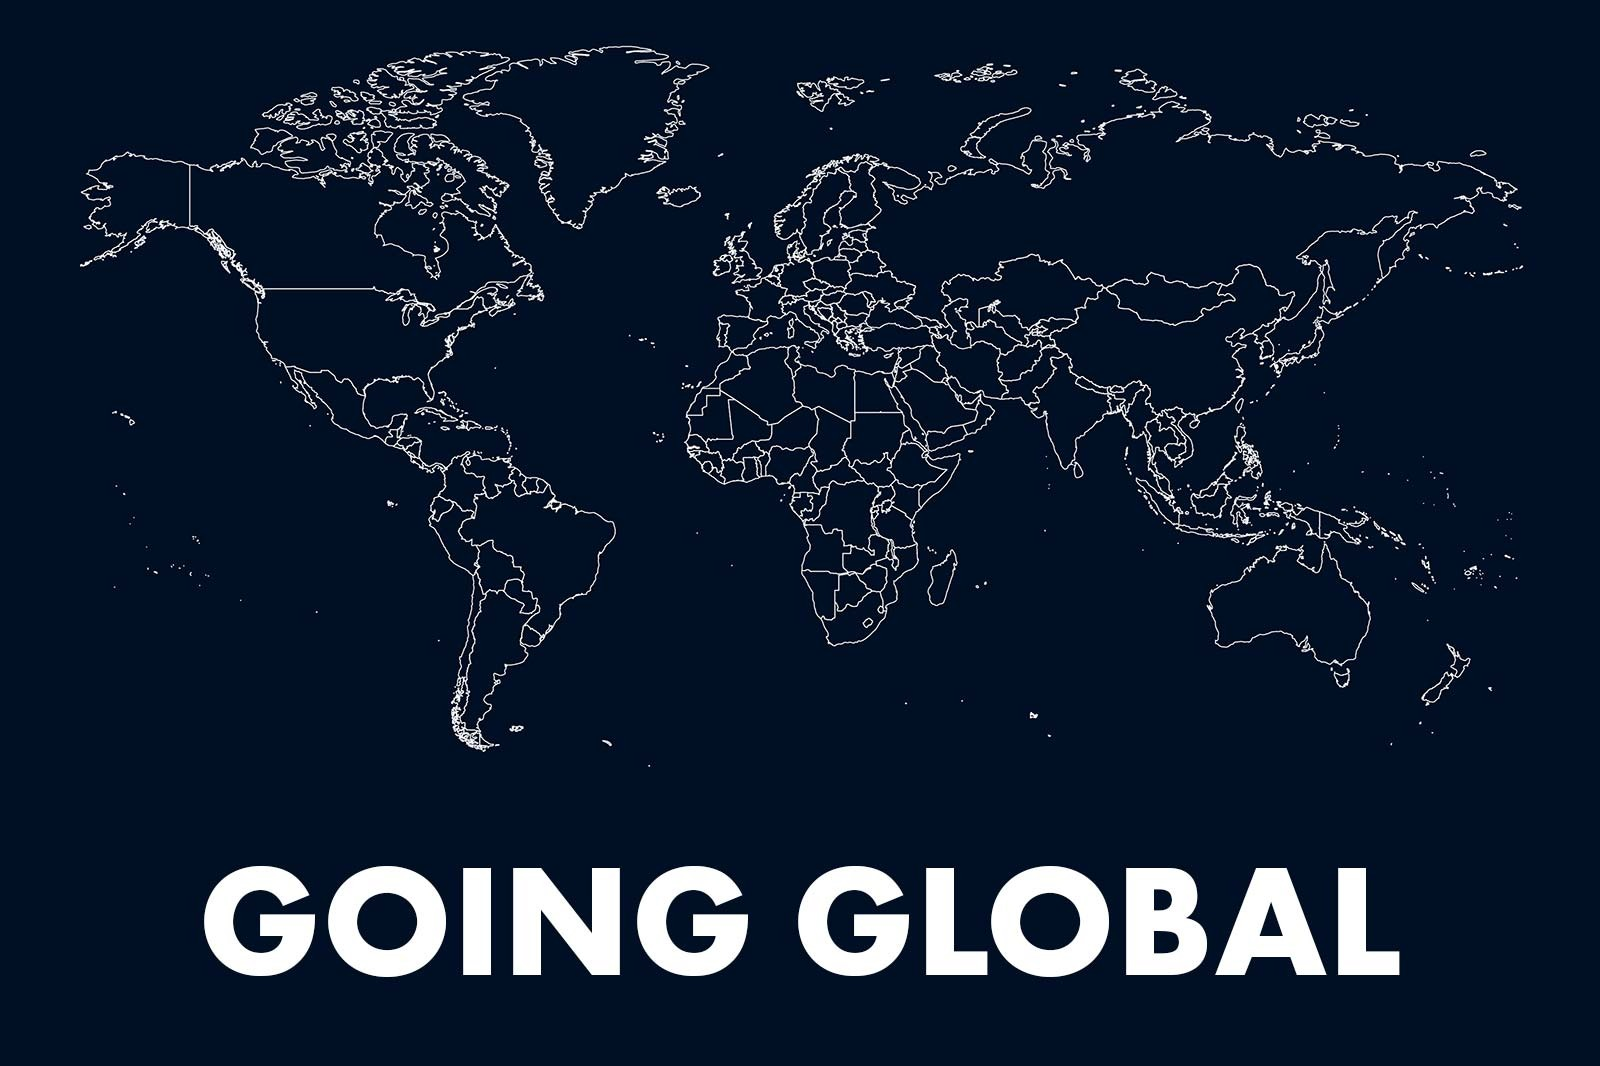 GOING GLOBAL: AUCTIONS BEYOND BORDERS